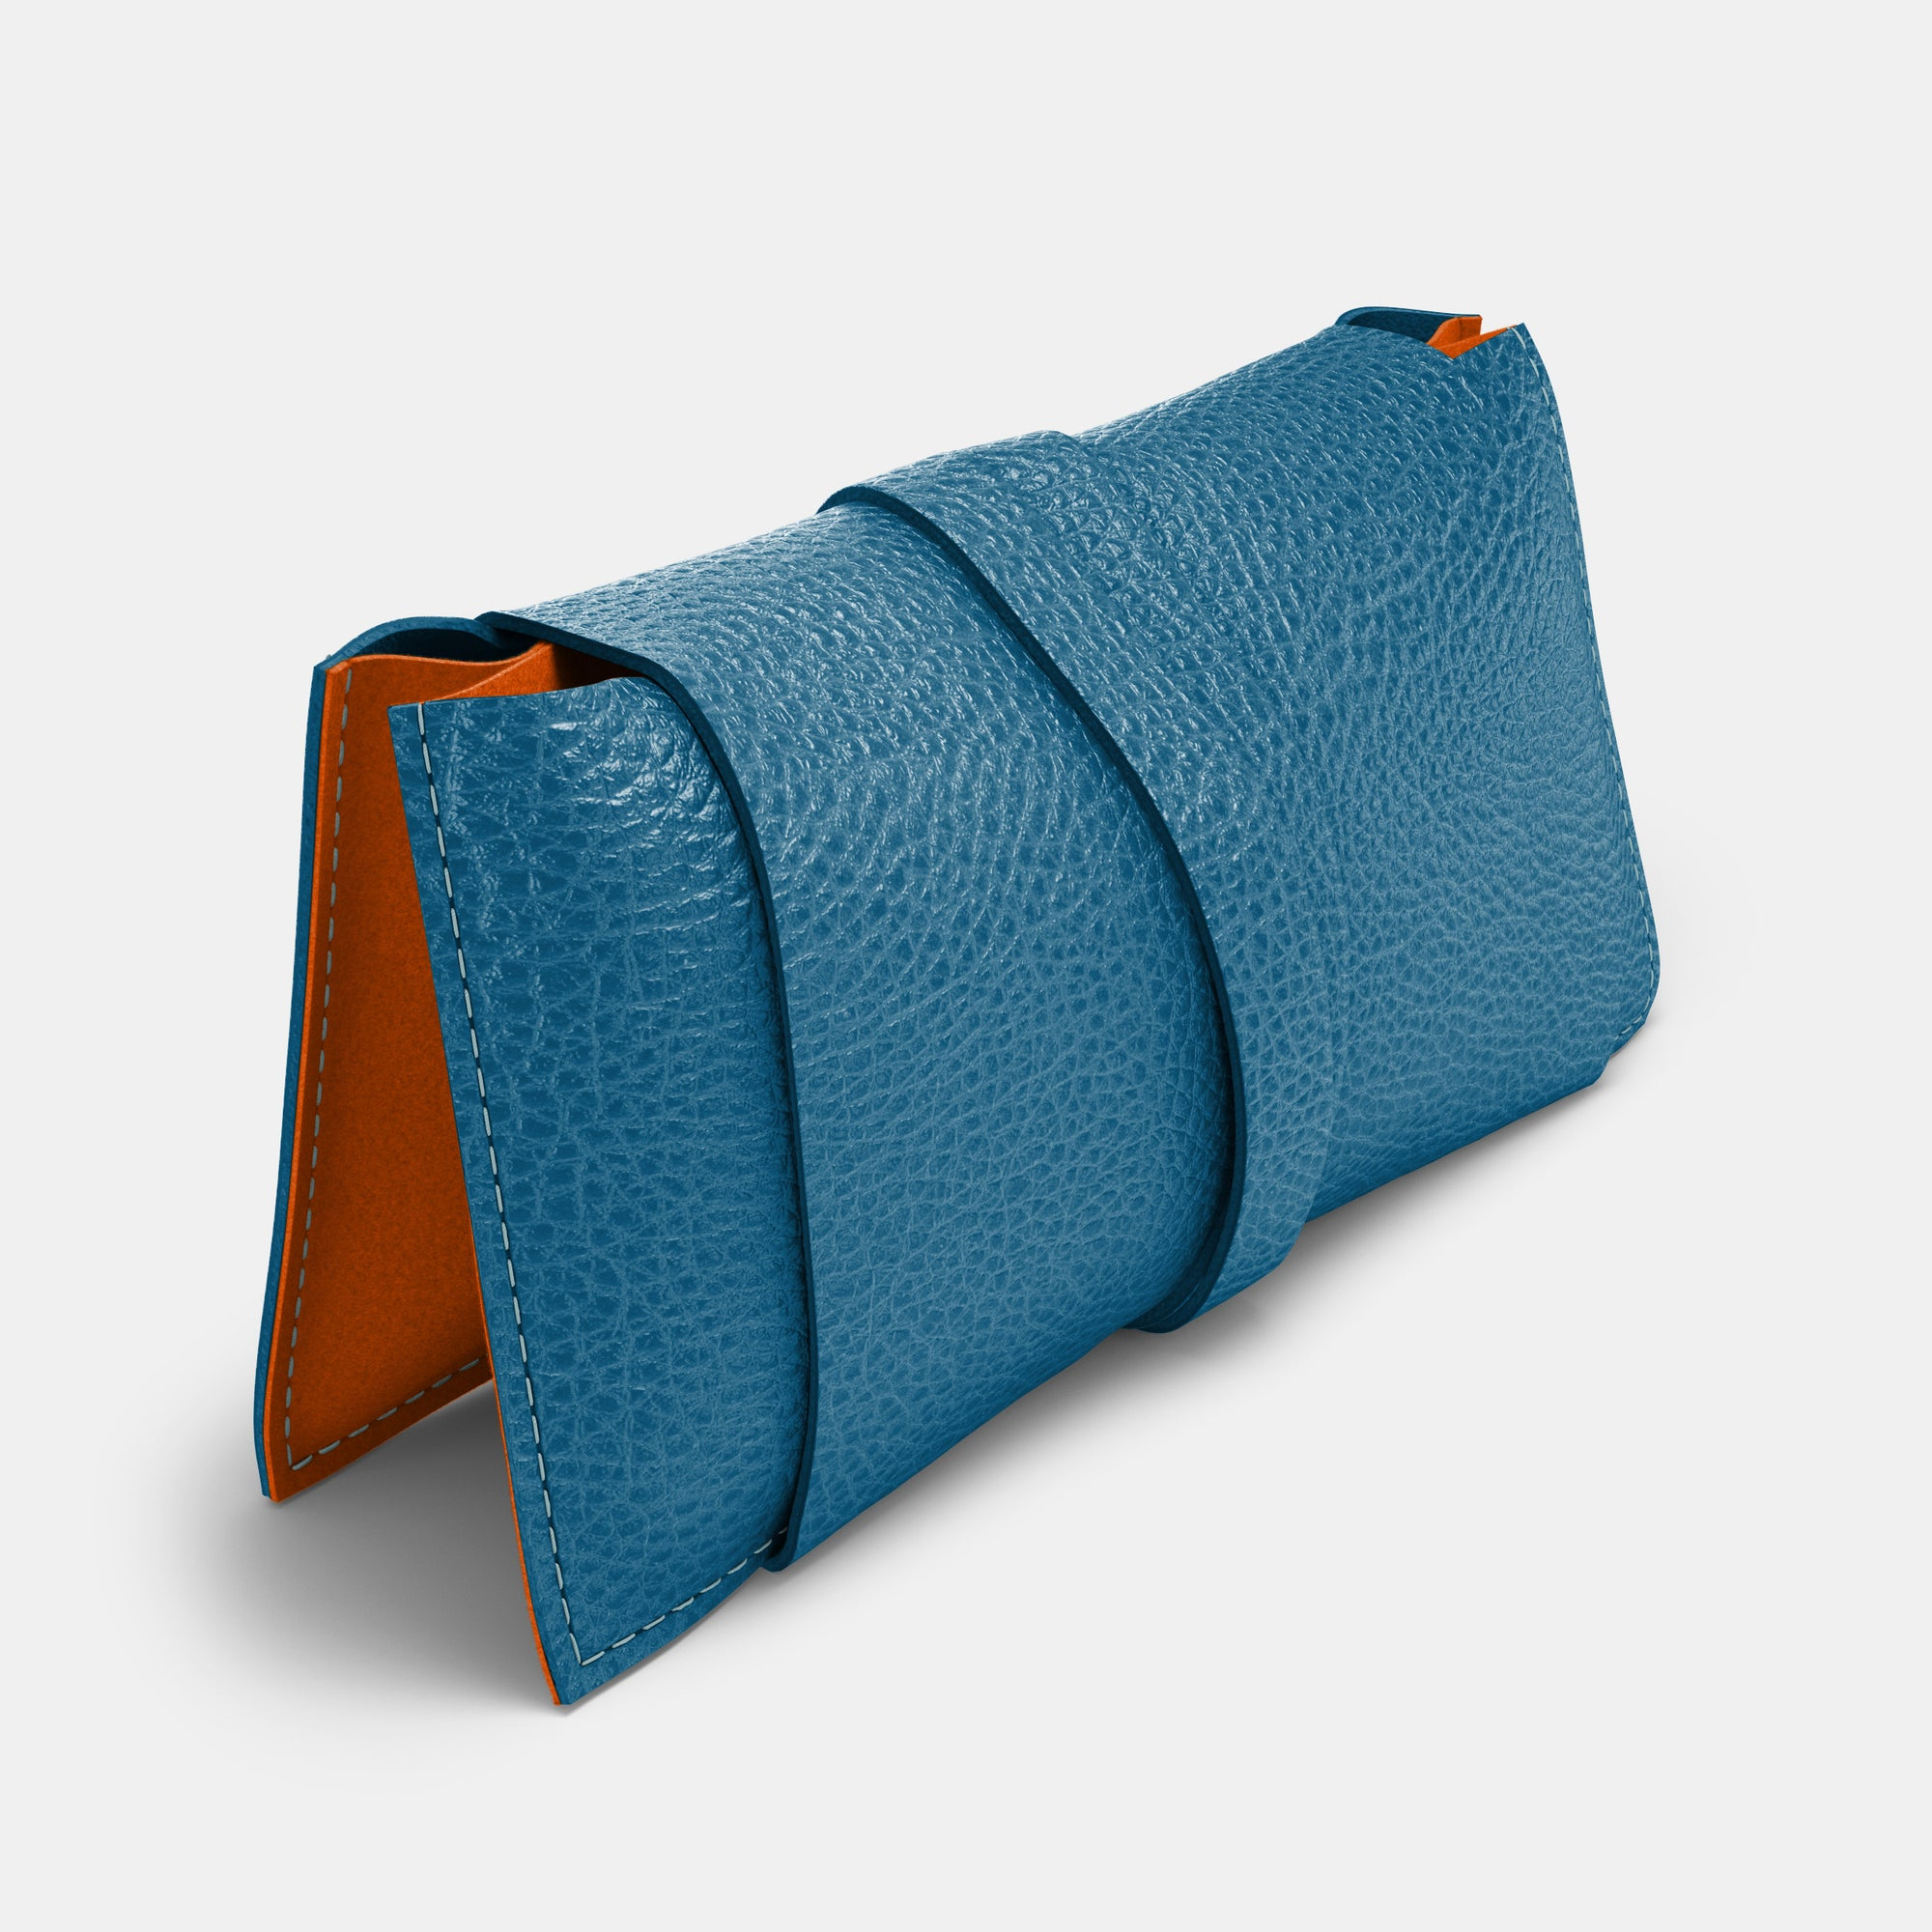 Cable Bag - Turquoise and Orange - RYAN London